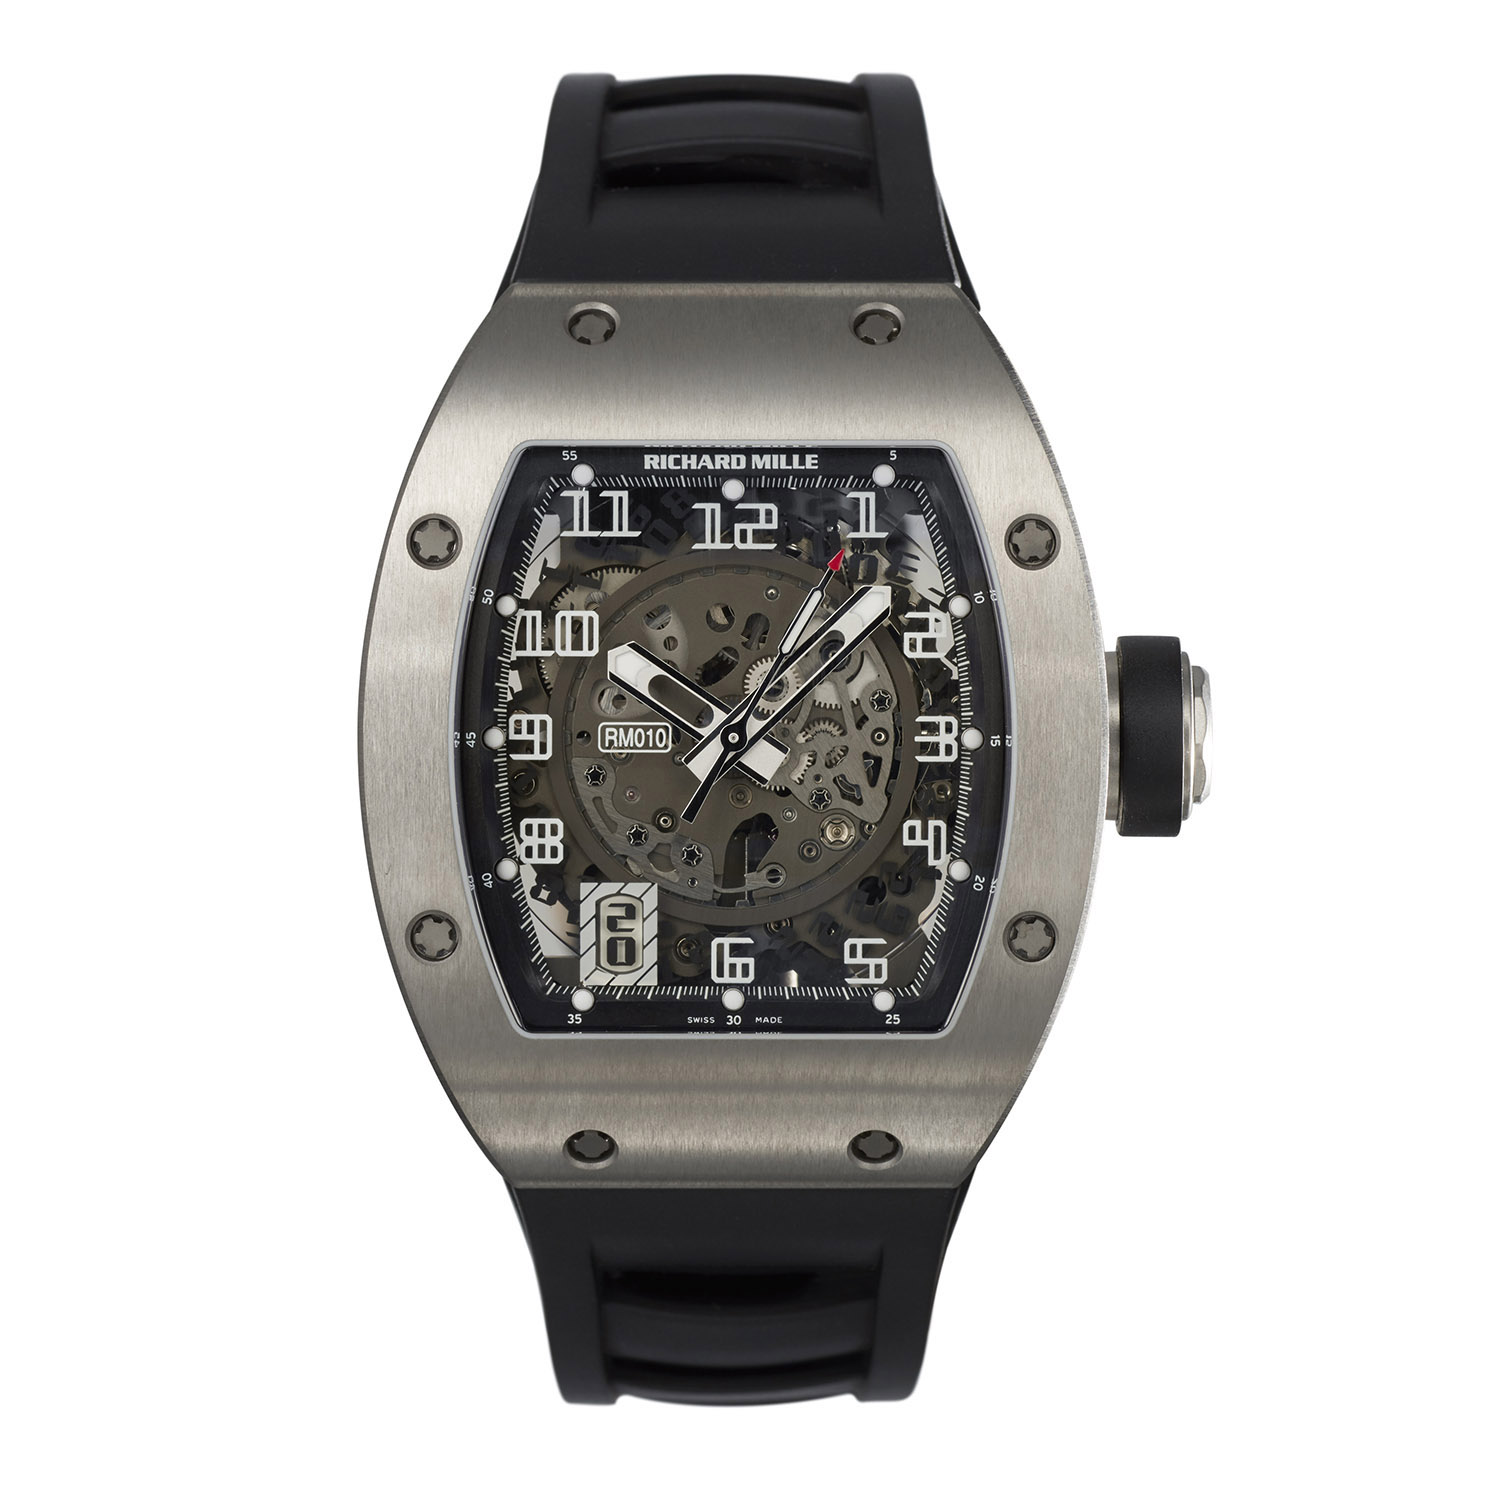 Richard Mille RM10 Wristwatch, Serial FL41777